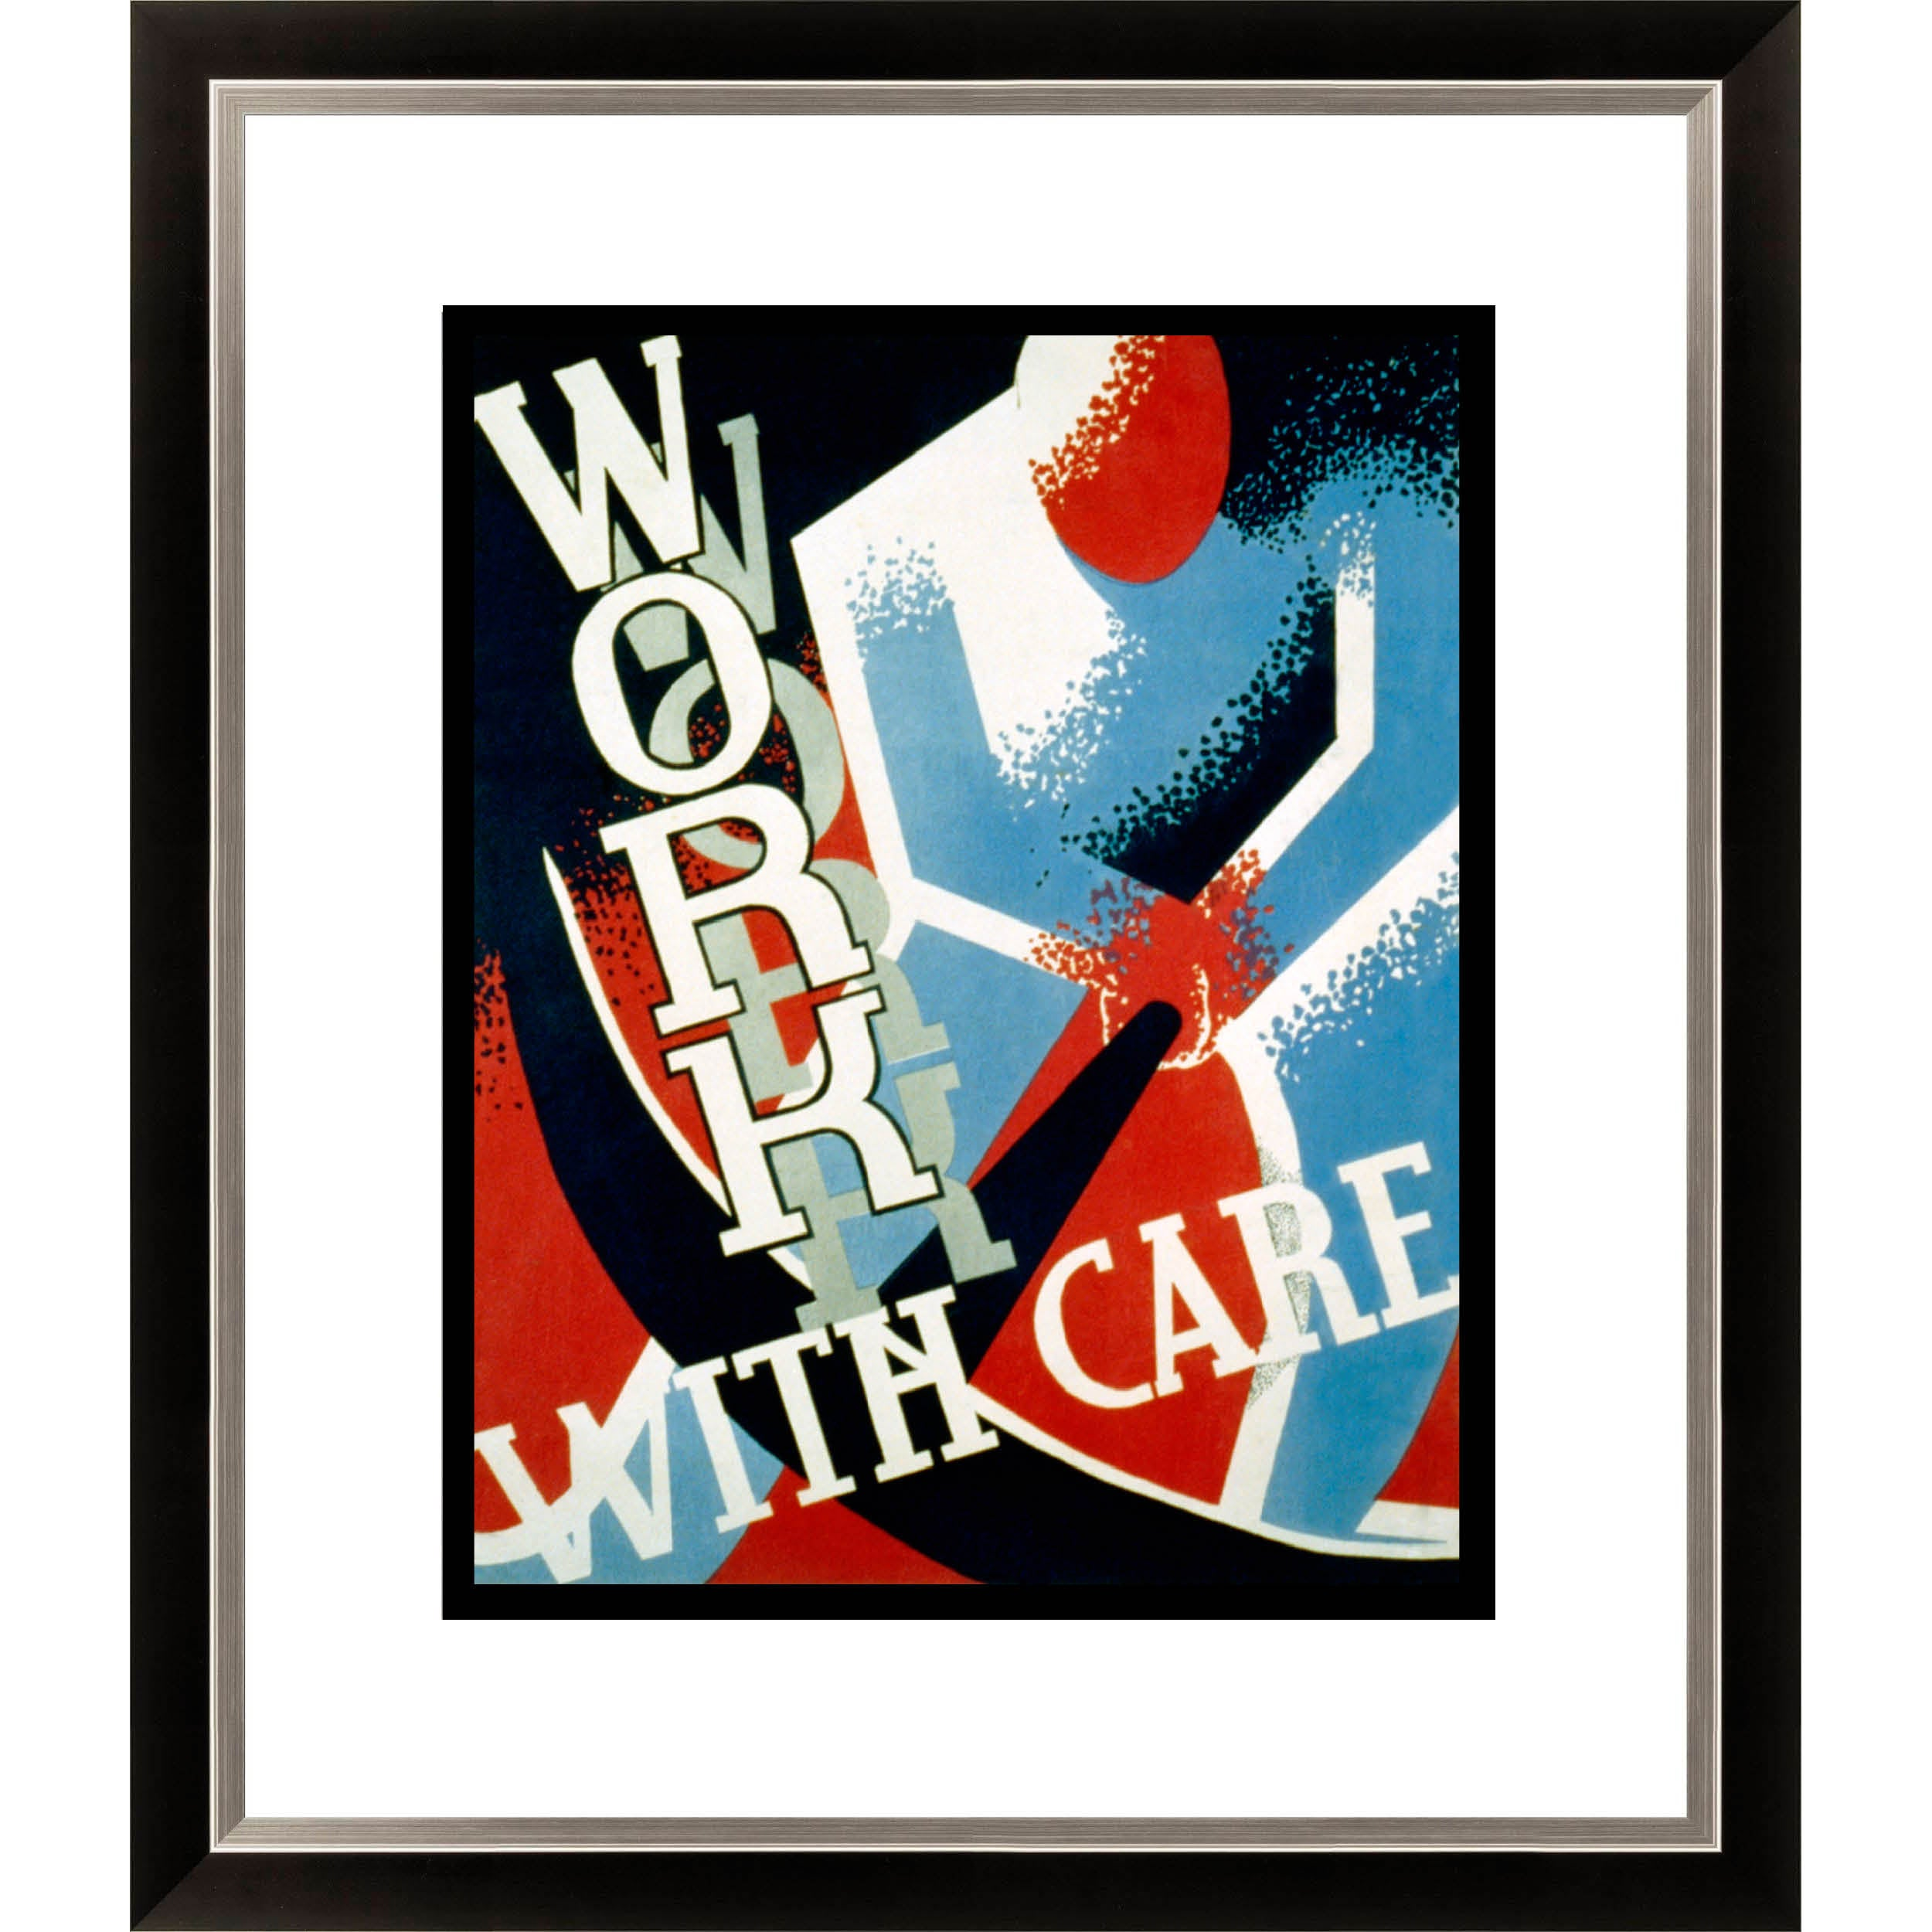 Gallery Direct 'Work with Care' Framed Limited Edition Giclee